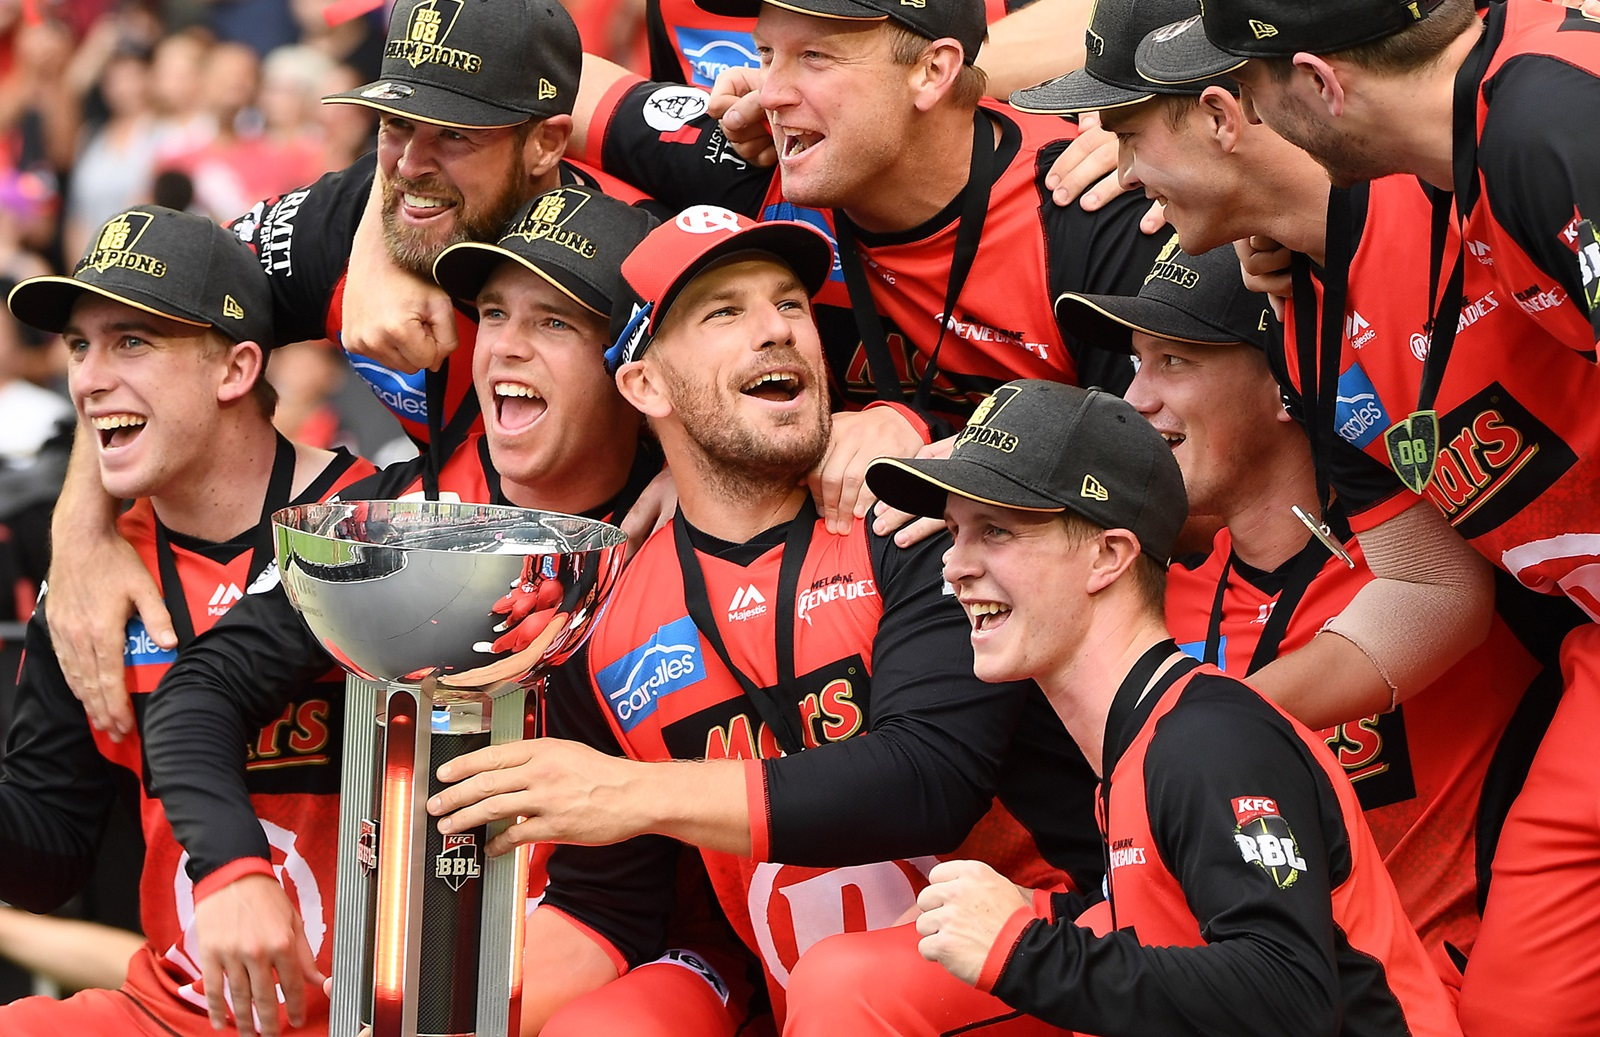 Cricket Australia going to introduce multiple Super overs in Big Bash League   BBL 2019-20